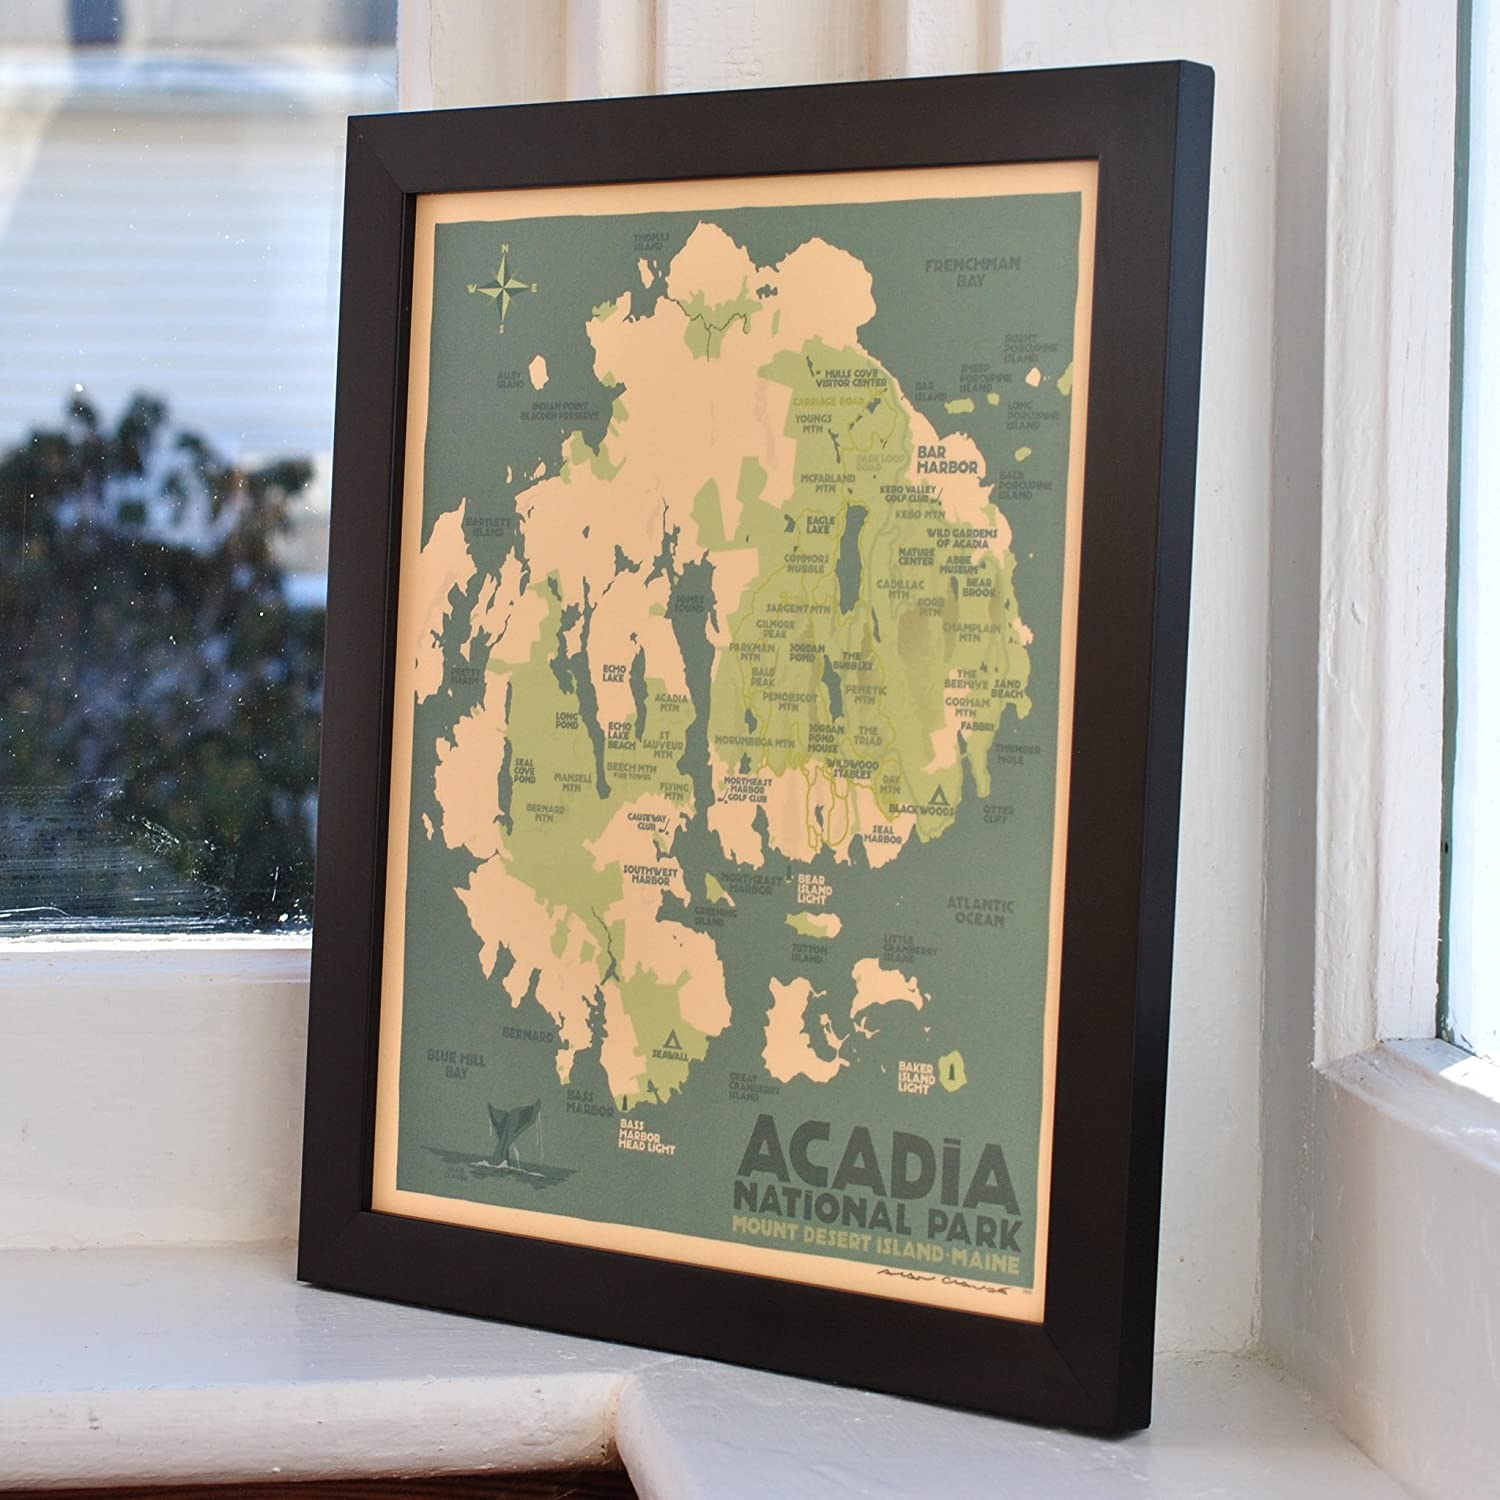 Ocean Park Maine Map.Amazon Com Acadia National Park Map Maine Framed Print 8x10